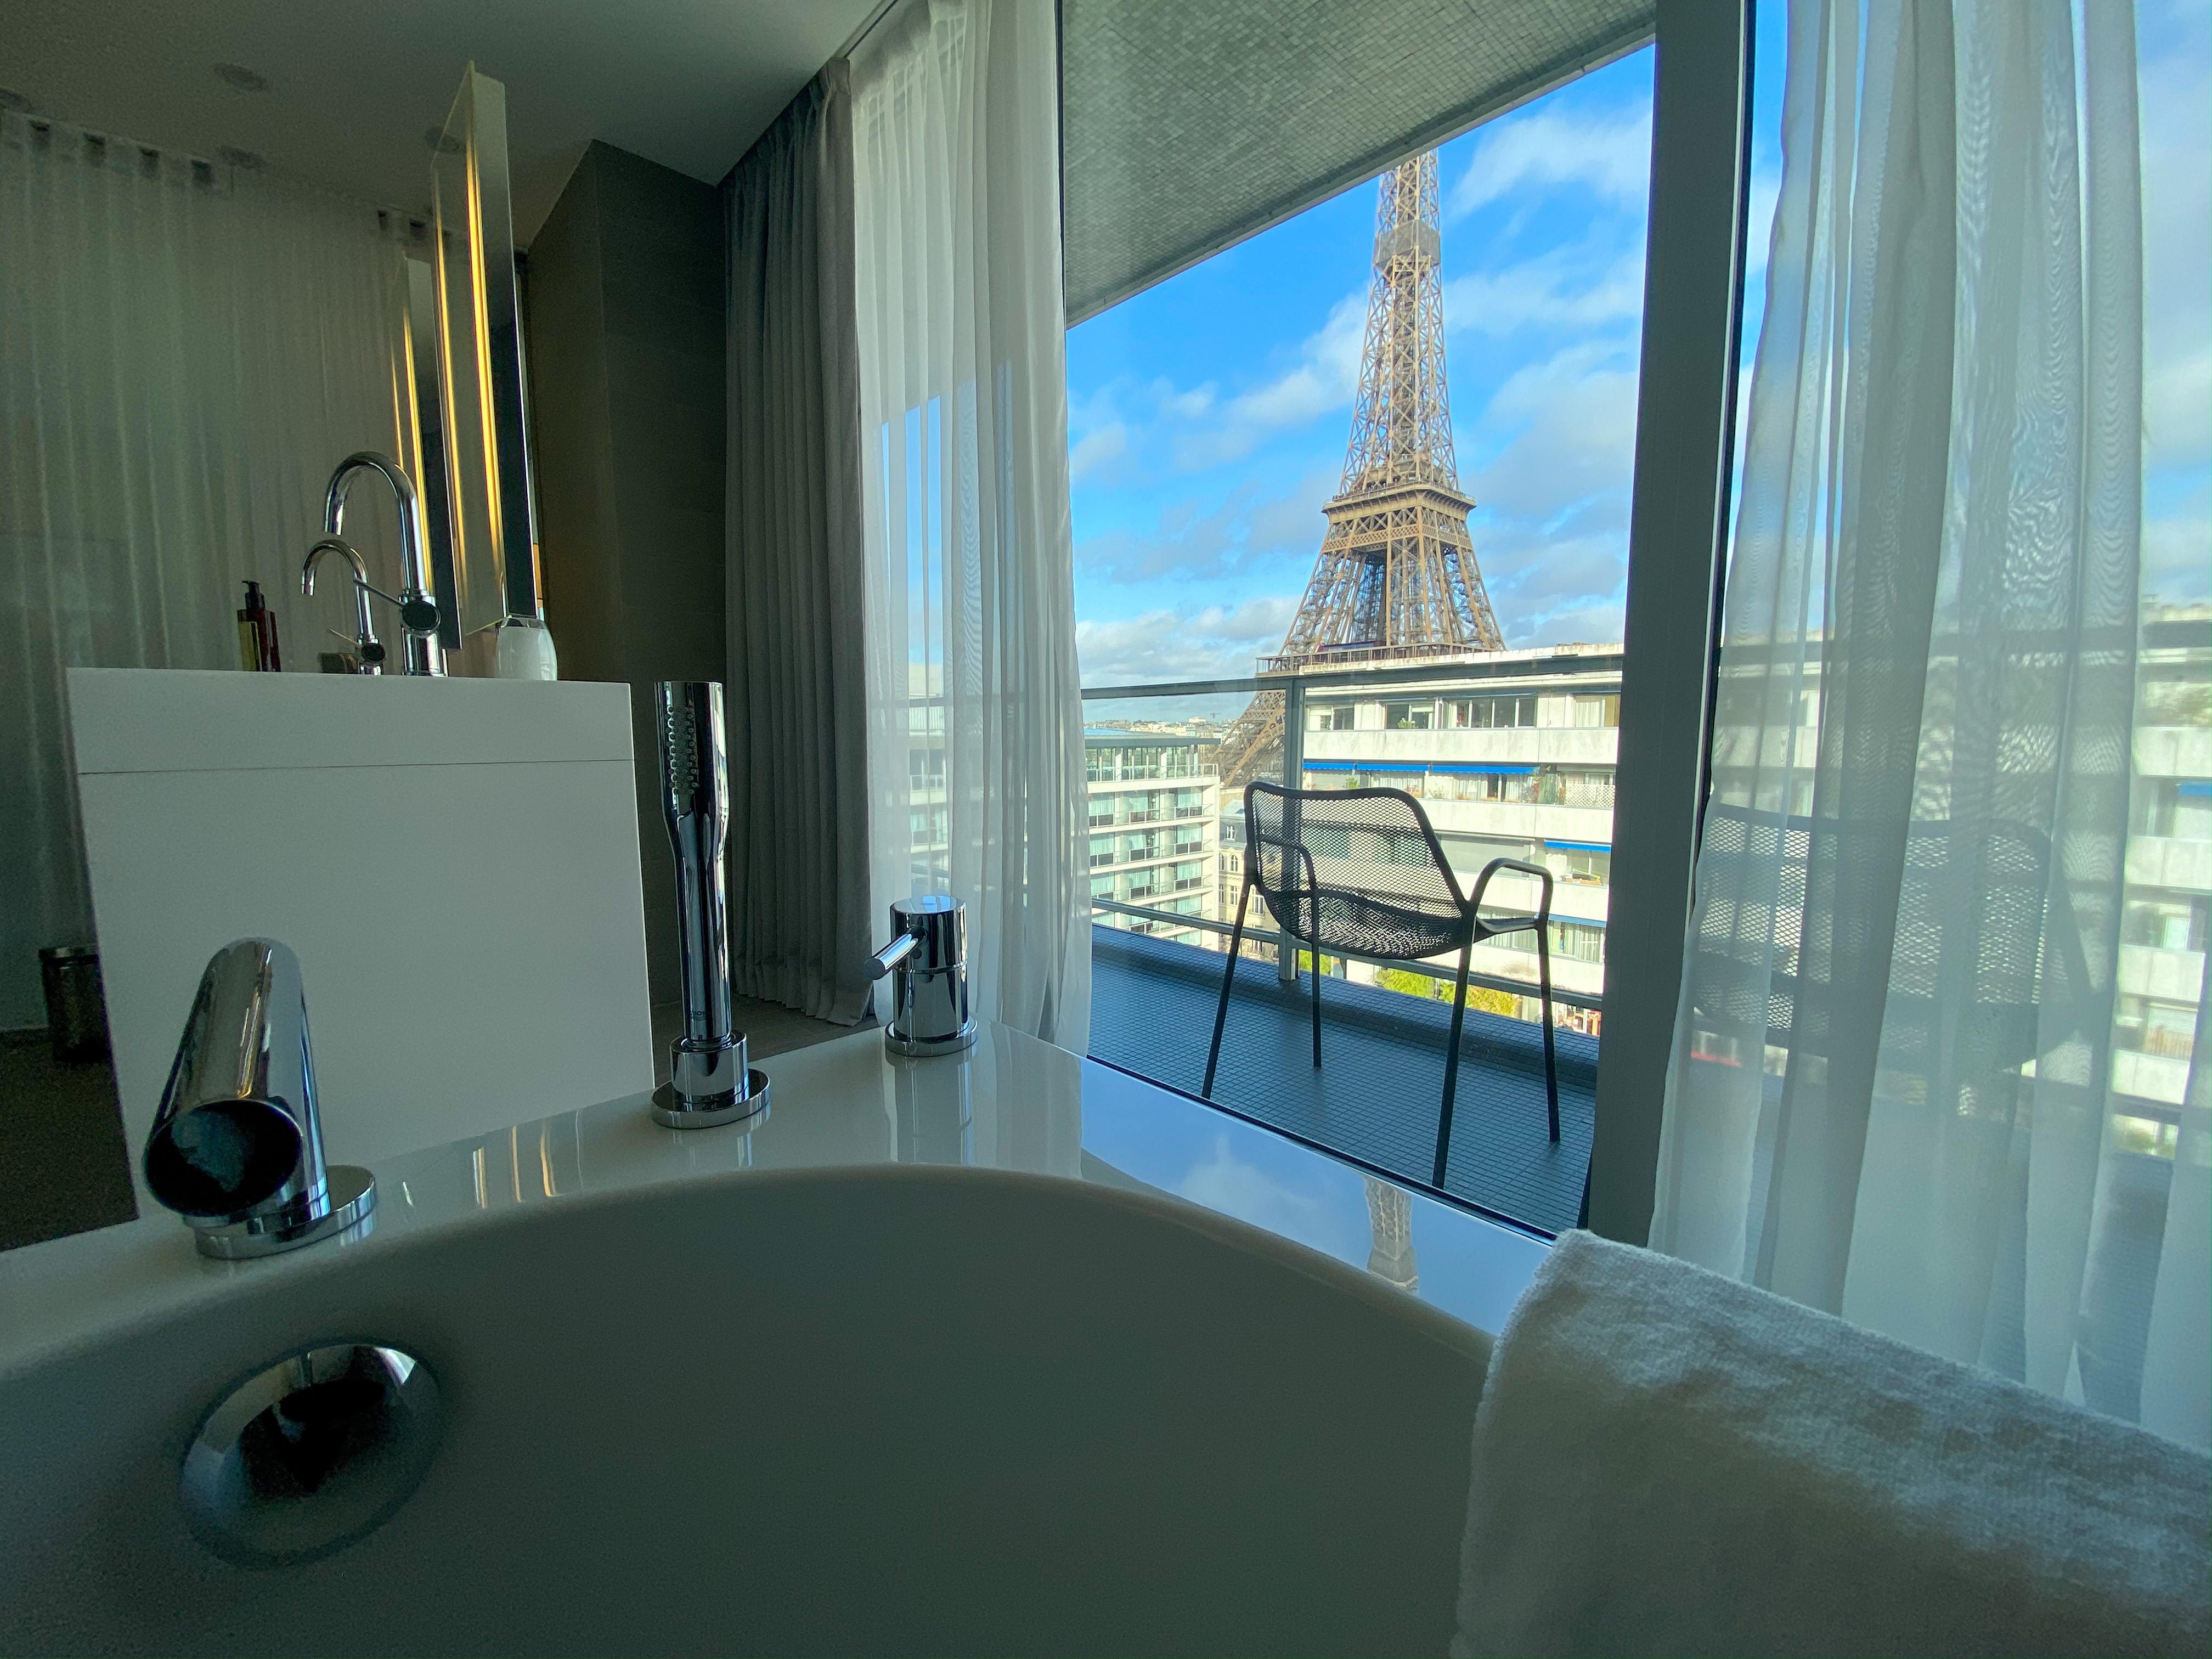 Eiffel Tower View from the Bathroom